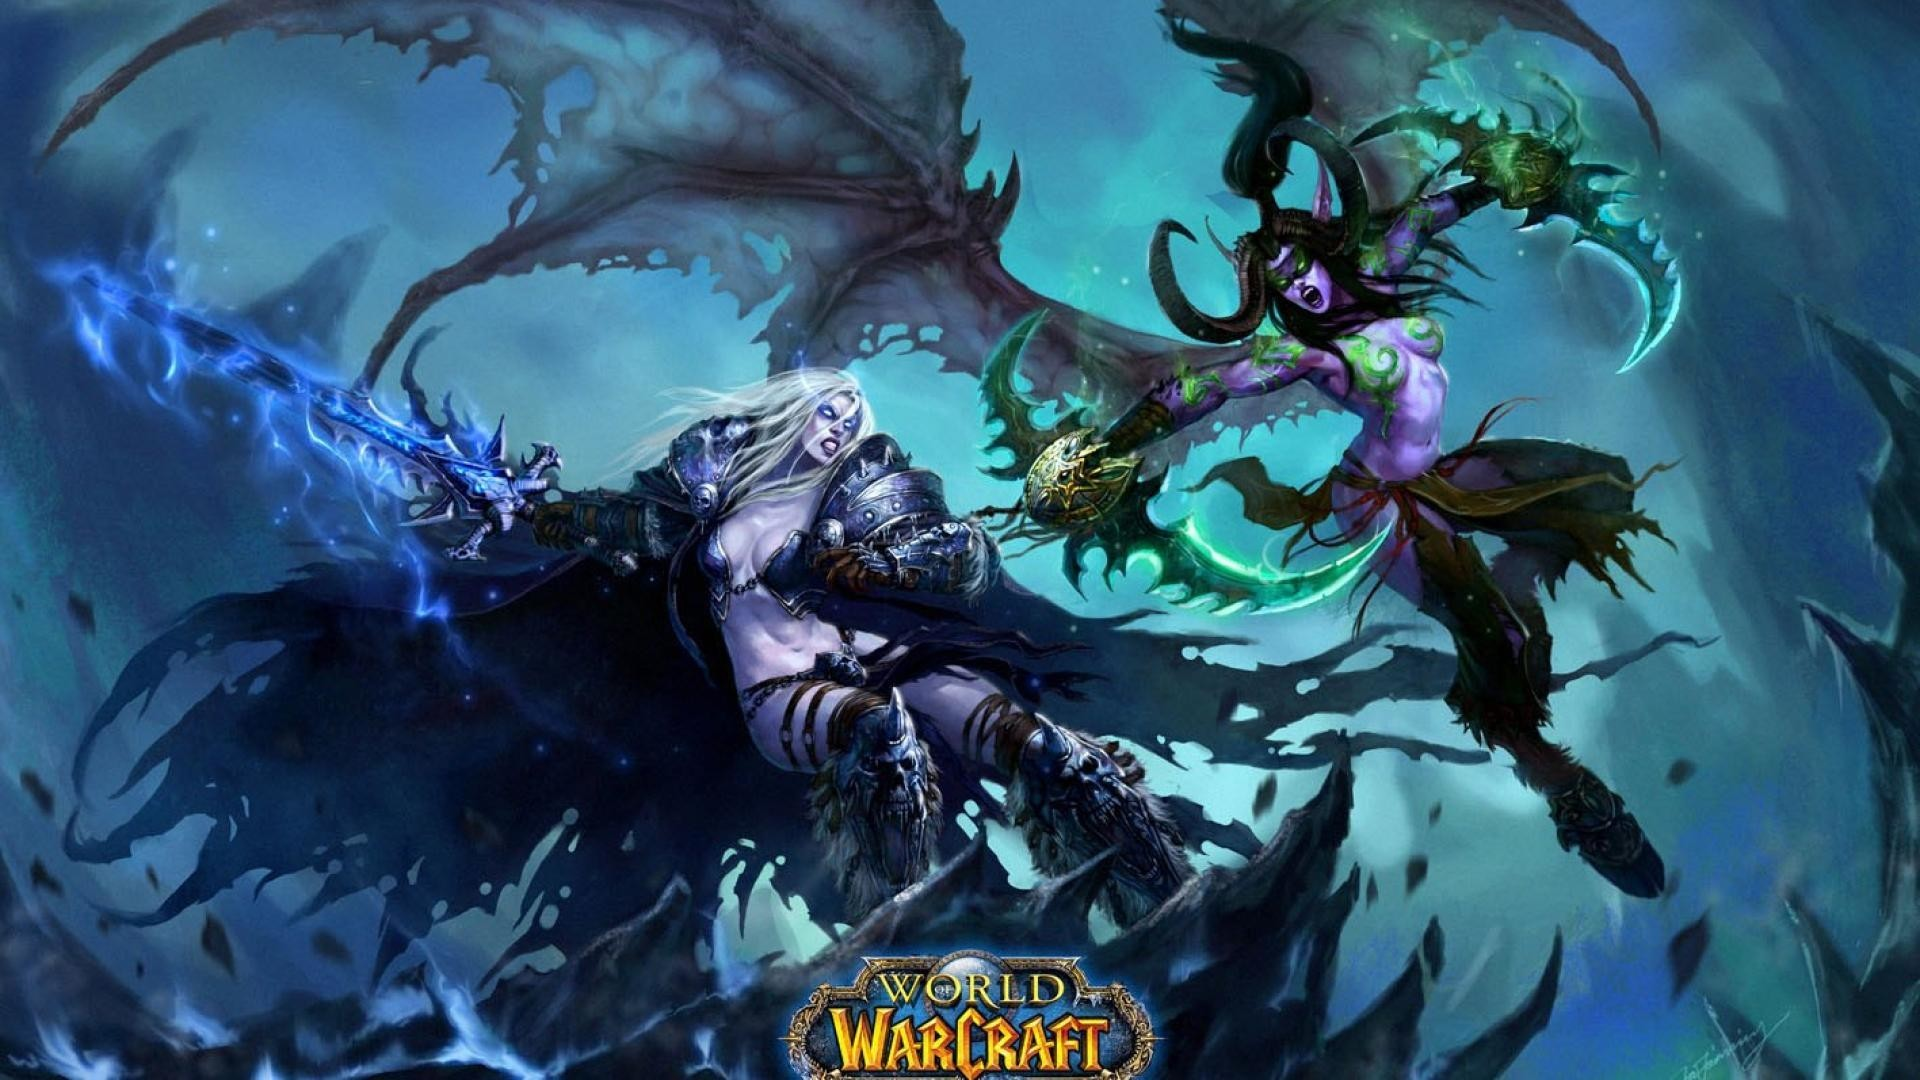 1920x1080 Awesome World Of Warcraft Game Wallpaper